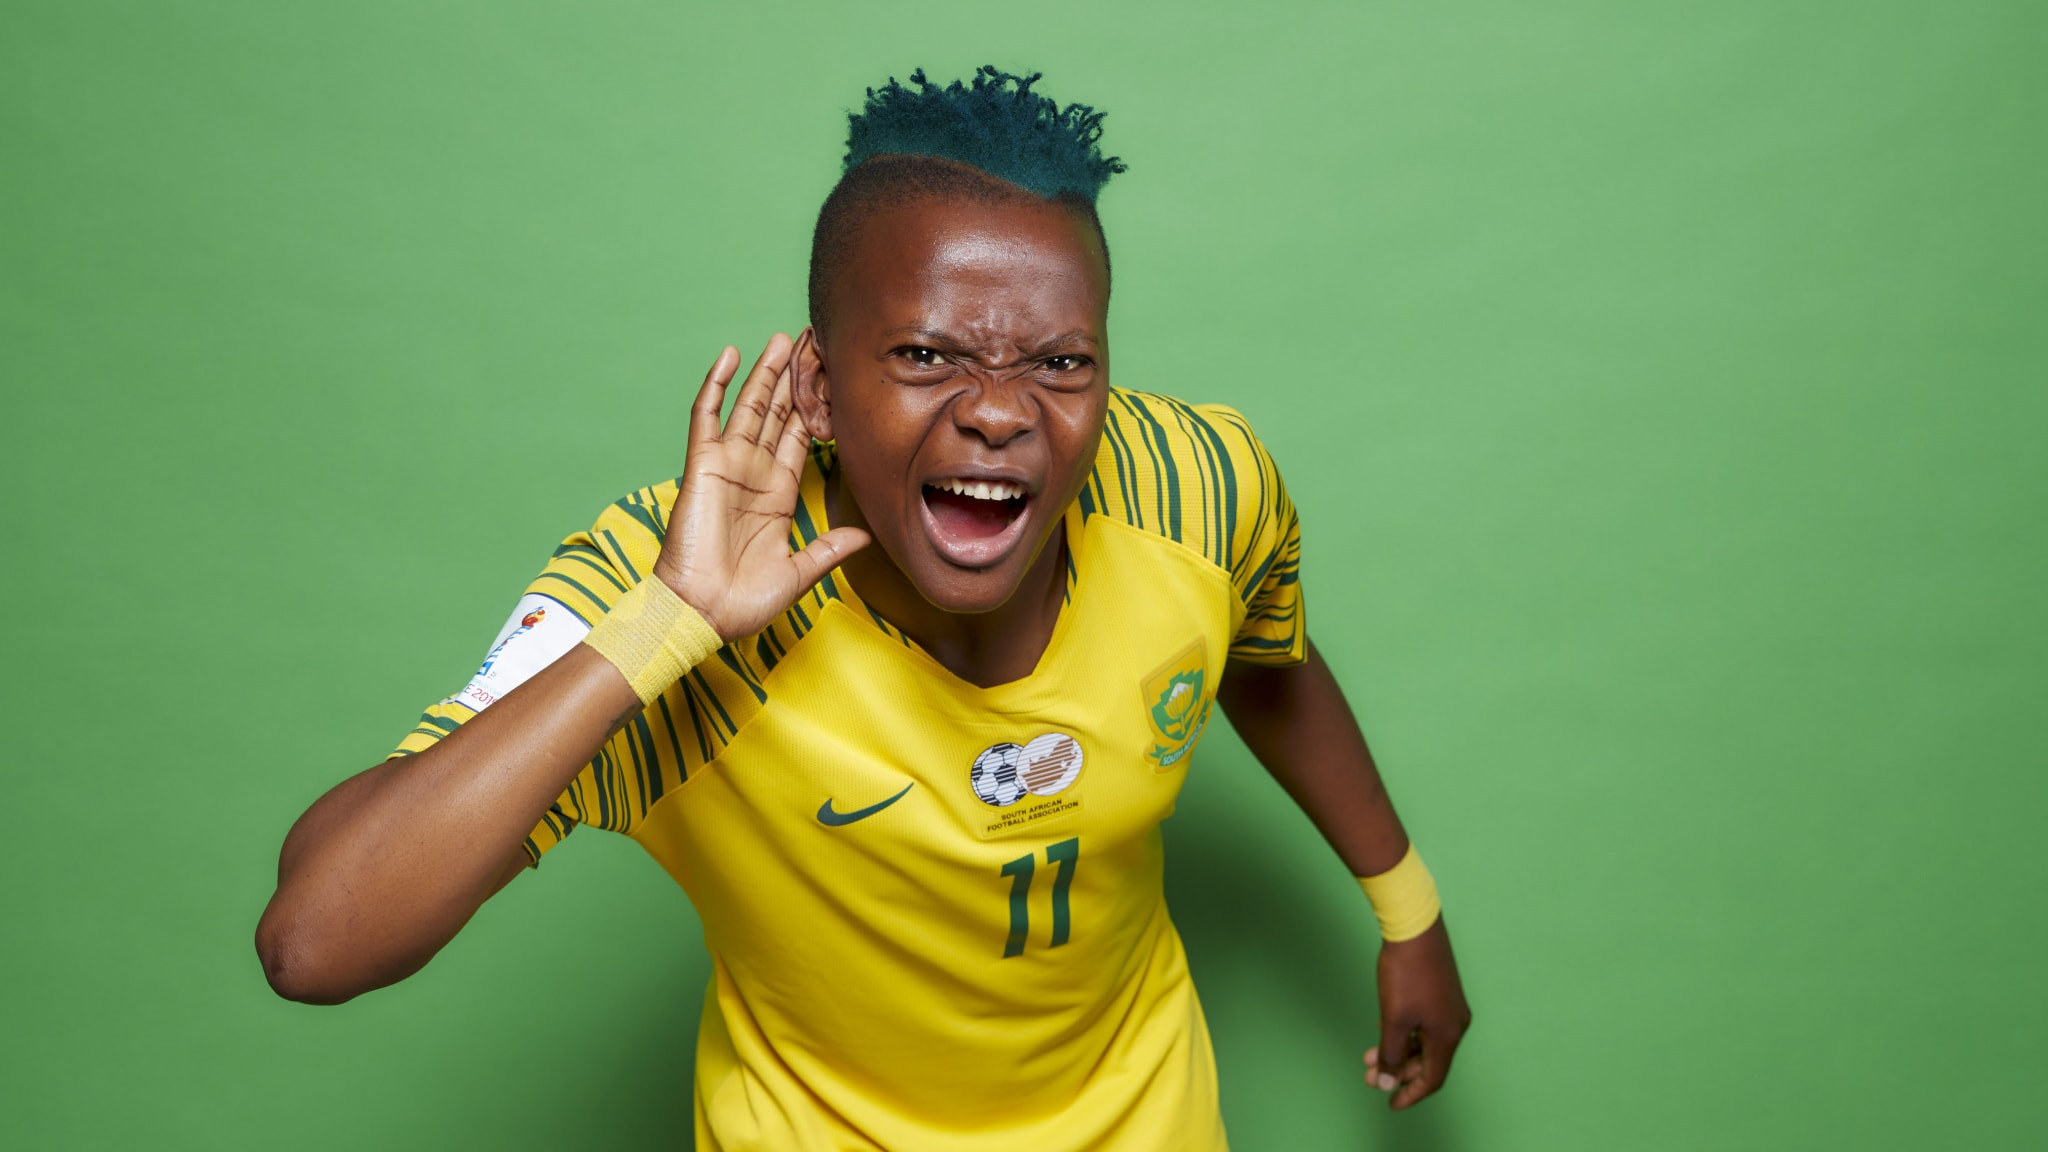 Thembi Kgatlana of South Africa poses for a portrait